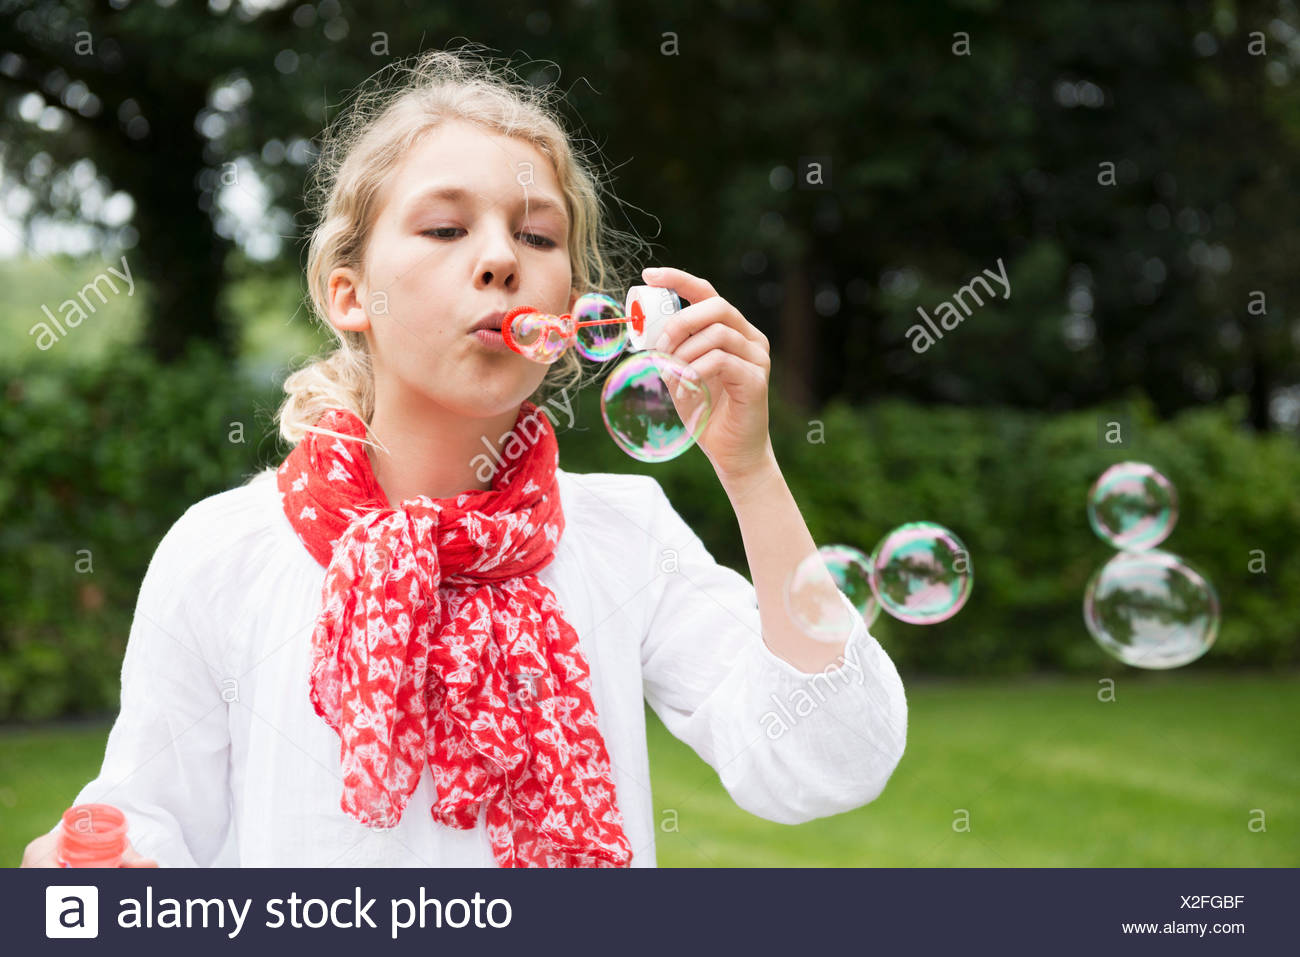 Girl blowing bubbles - Stock Image